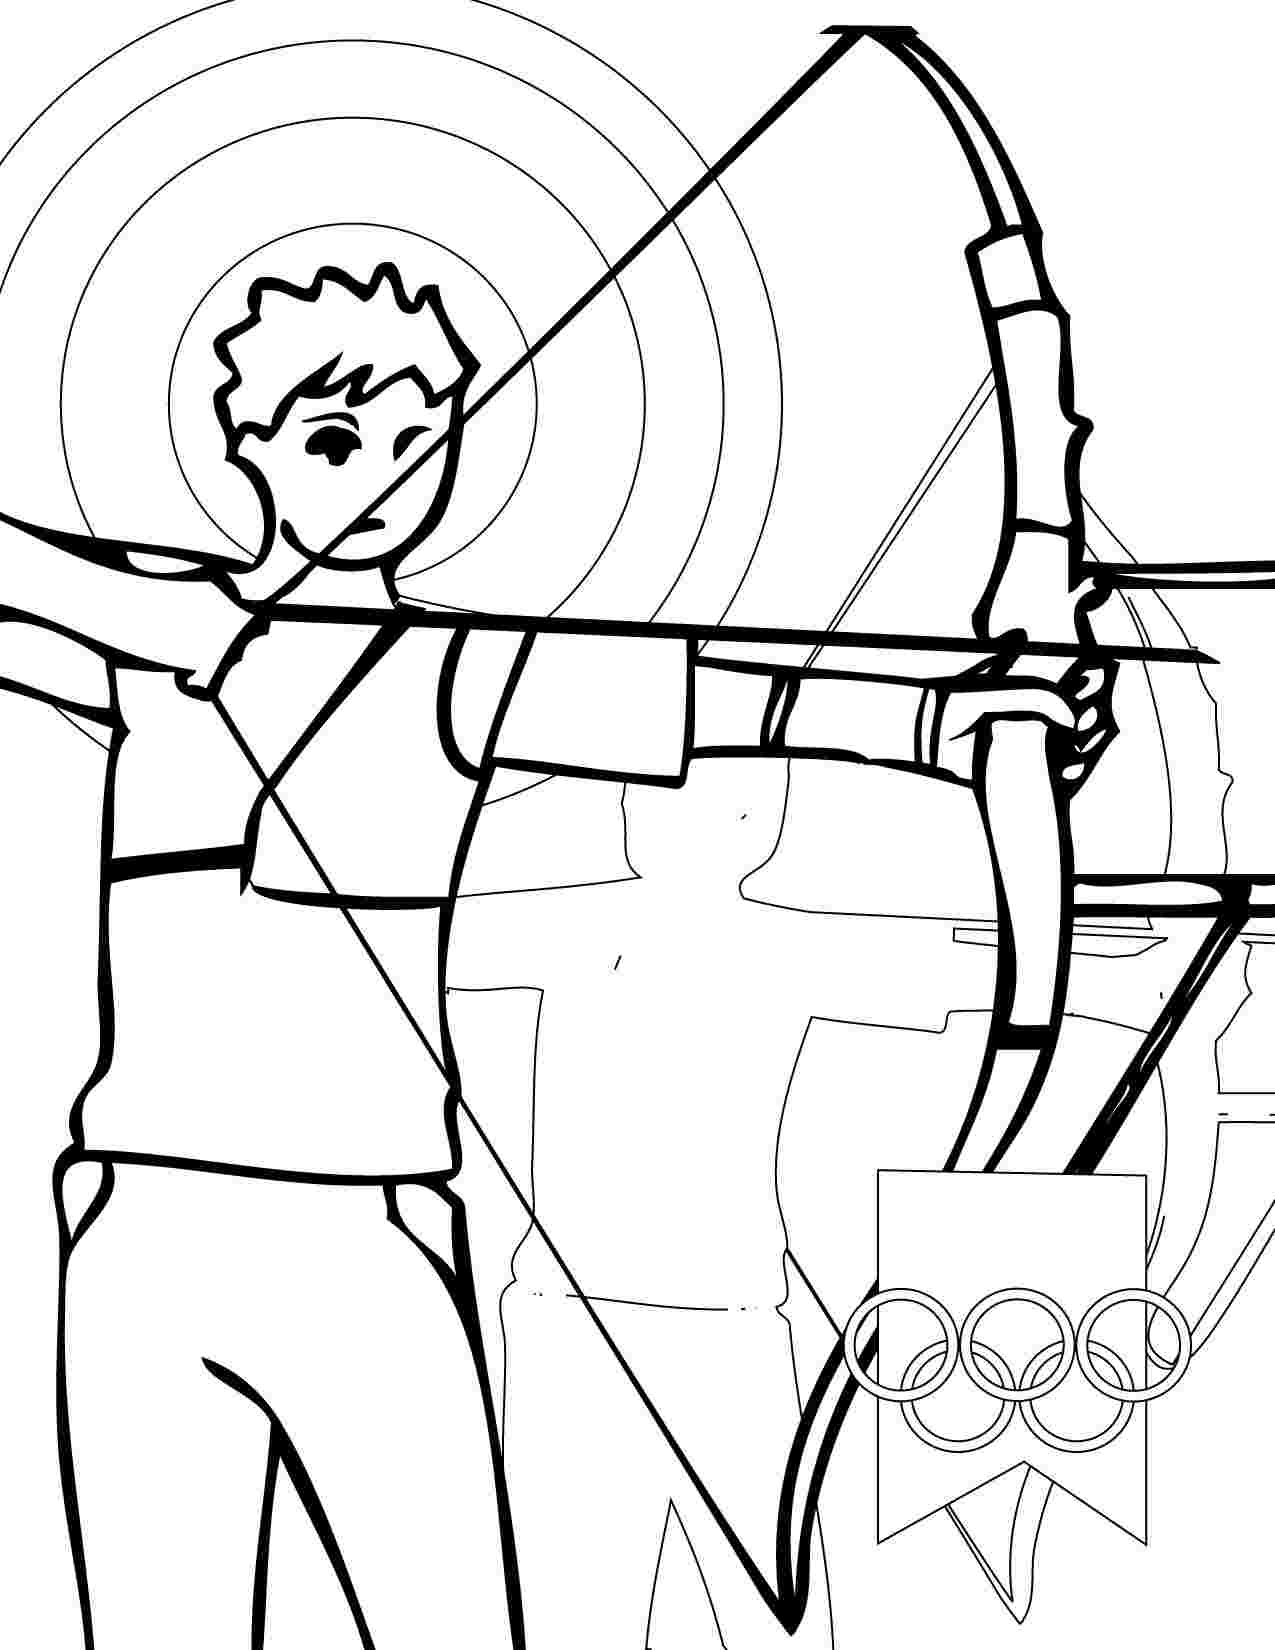 sport coloring pages sports themed coloring pages at getcoloringscom free coloring pages sport